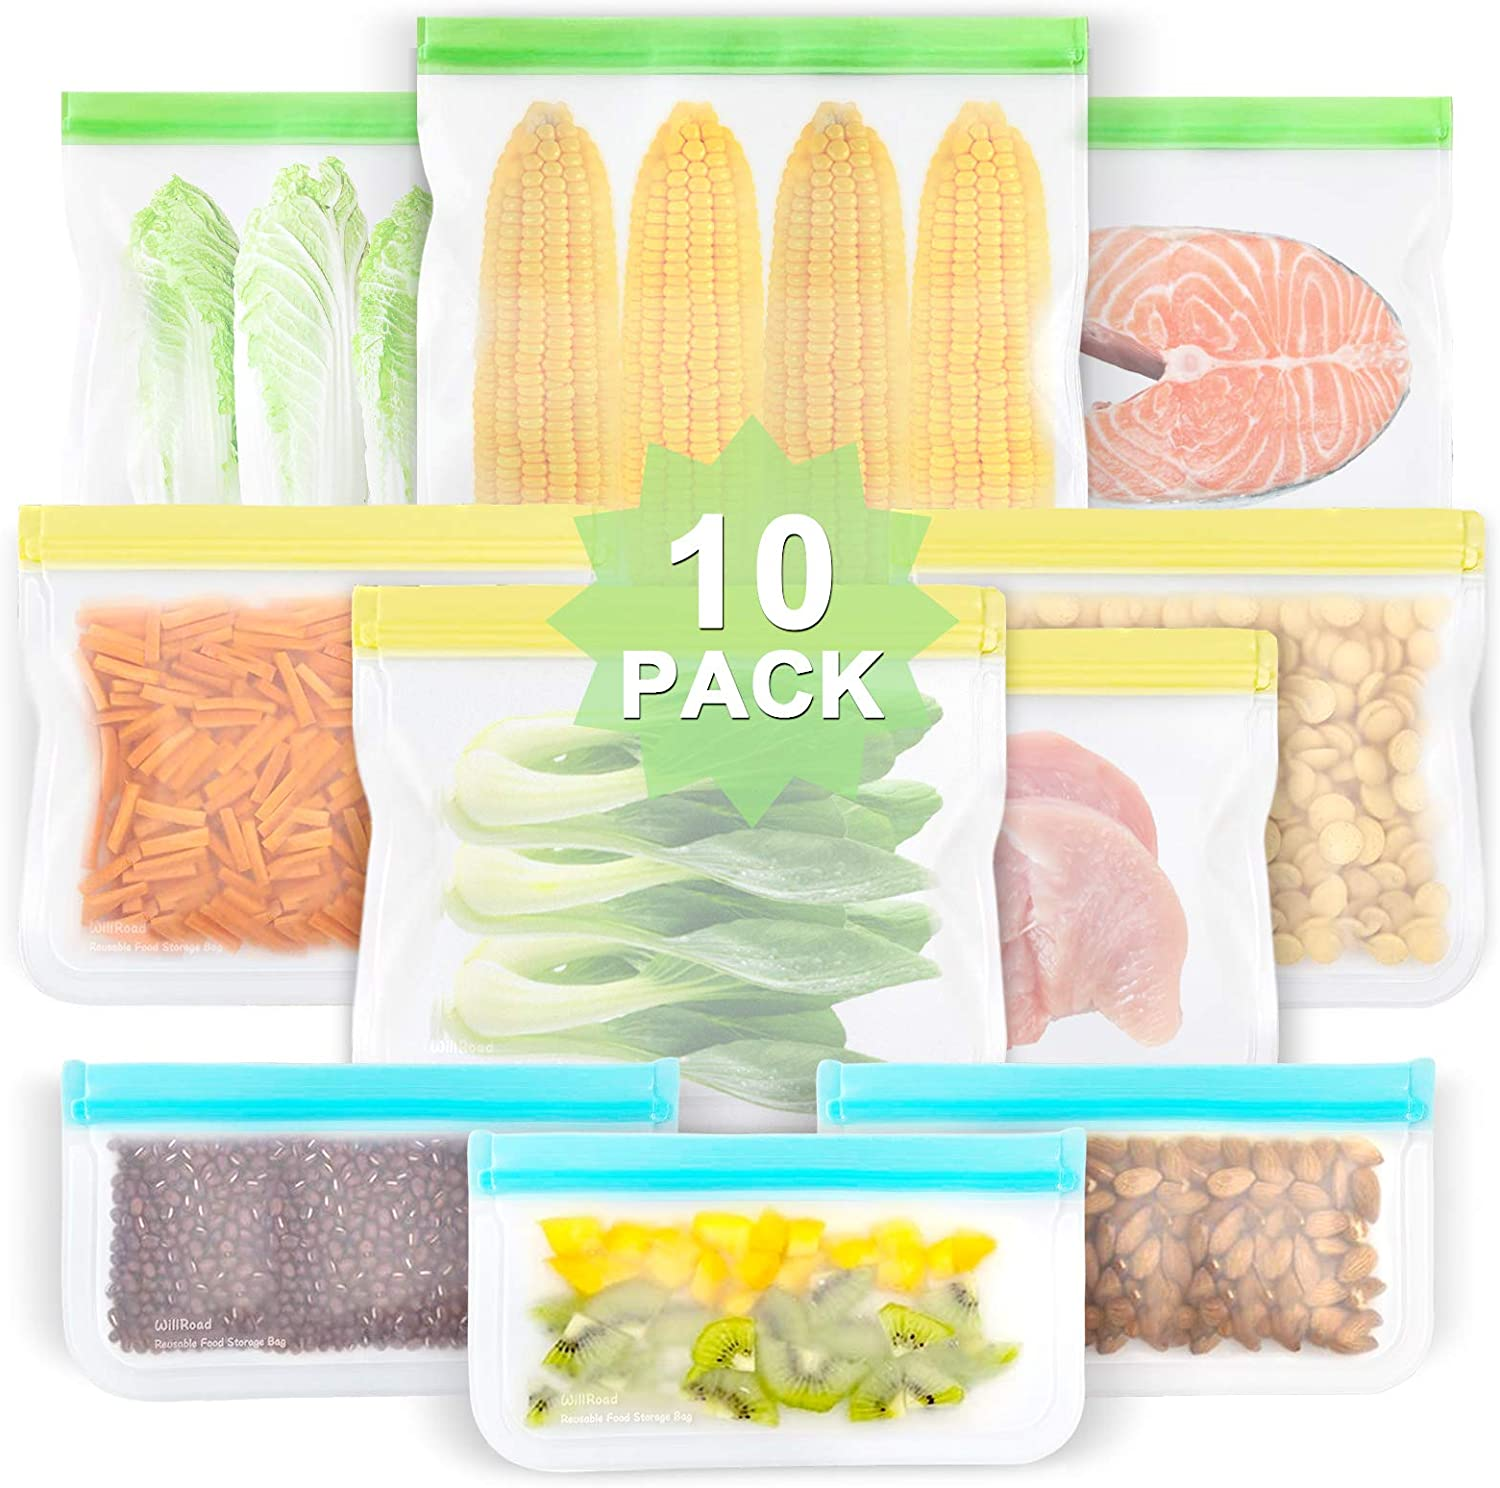 Reusable Food Storage Bags, 10 Pack EXTRA THICK Food Grade BPA FREE Leakproof Freezer Bags (3 Reusable Gallon Bags, 4 Reusable Sandwich Bags, 3 Snack Bags) Seal Bag for Travel Items, by WILLROAD